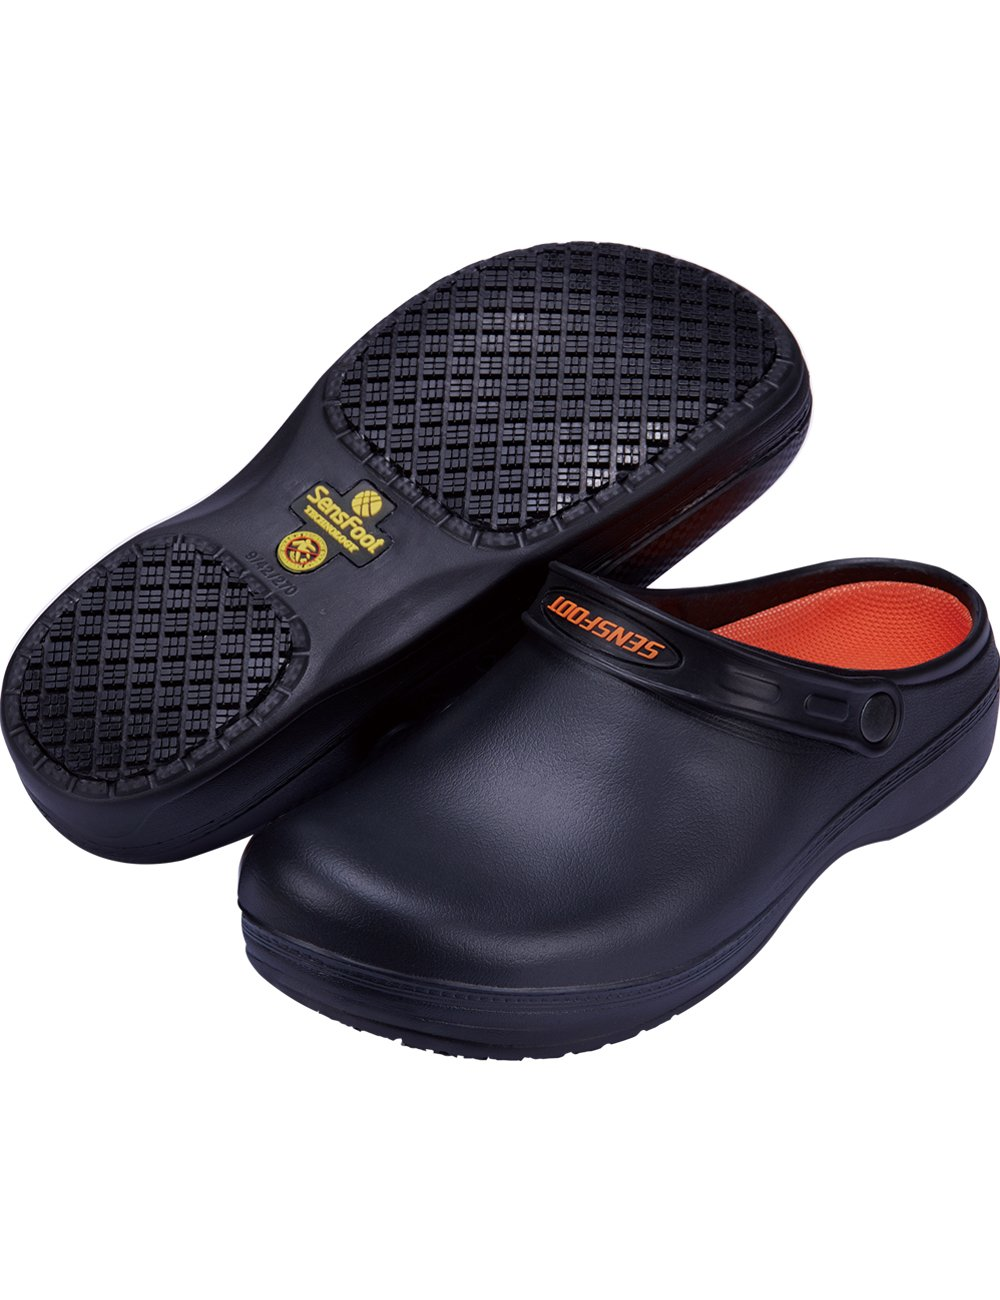 SensFoot Resistant Clogs Kitchen 11 11 5